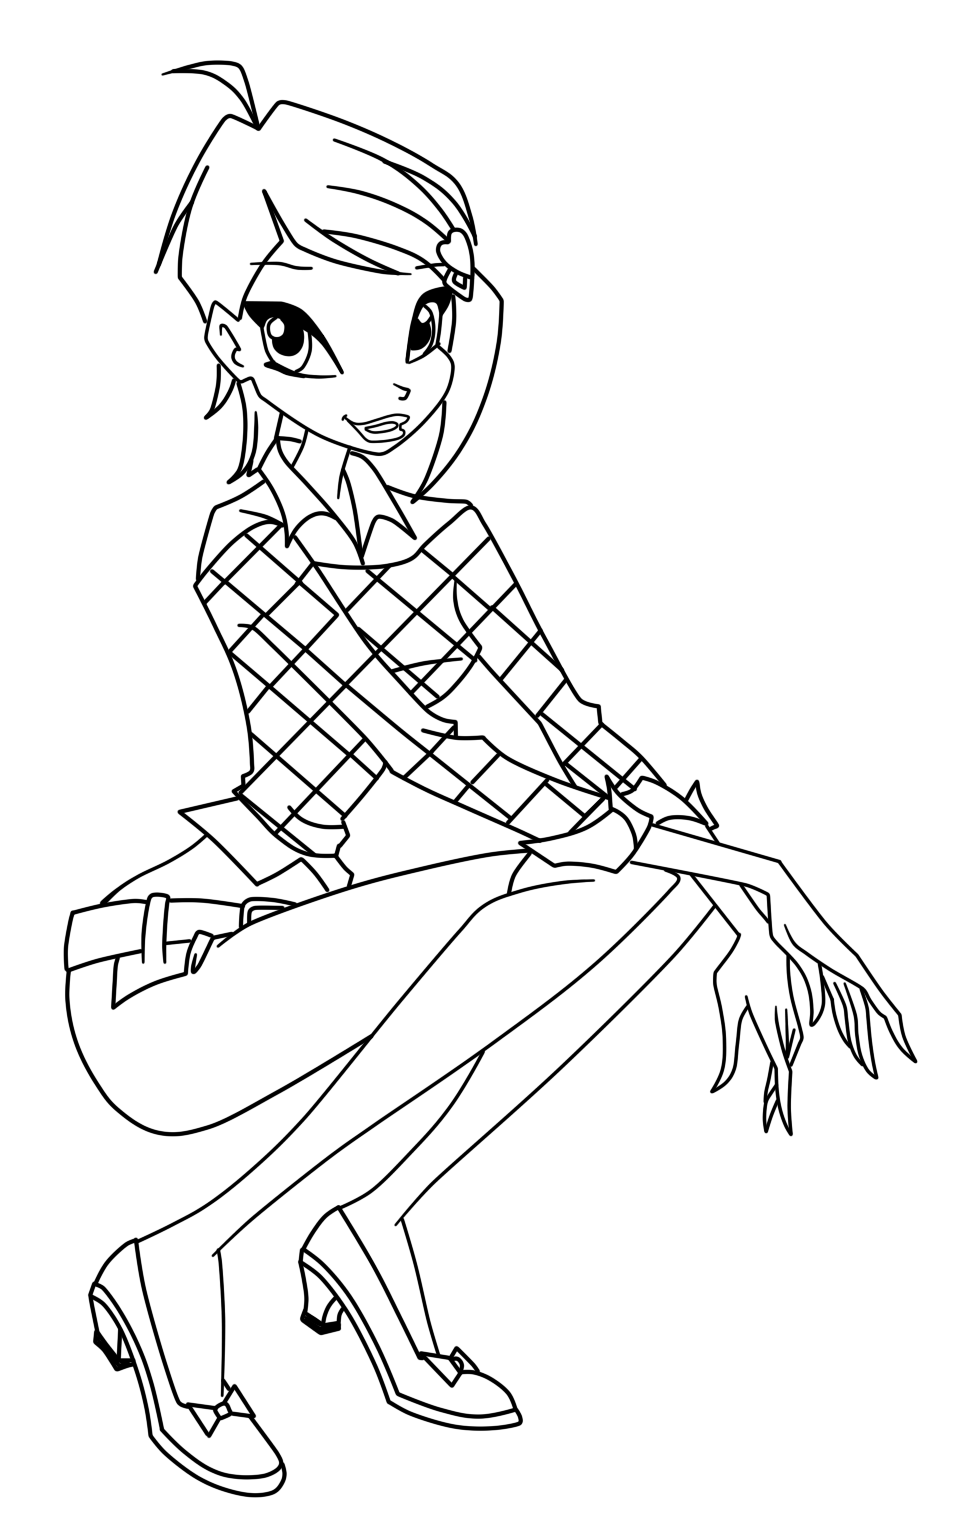 winx coloring pages winx club coloring pages coloring winx pages